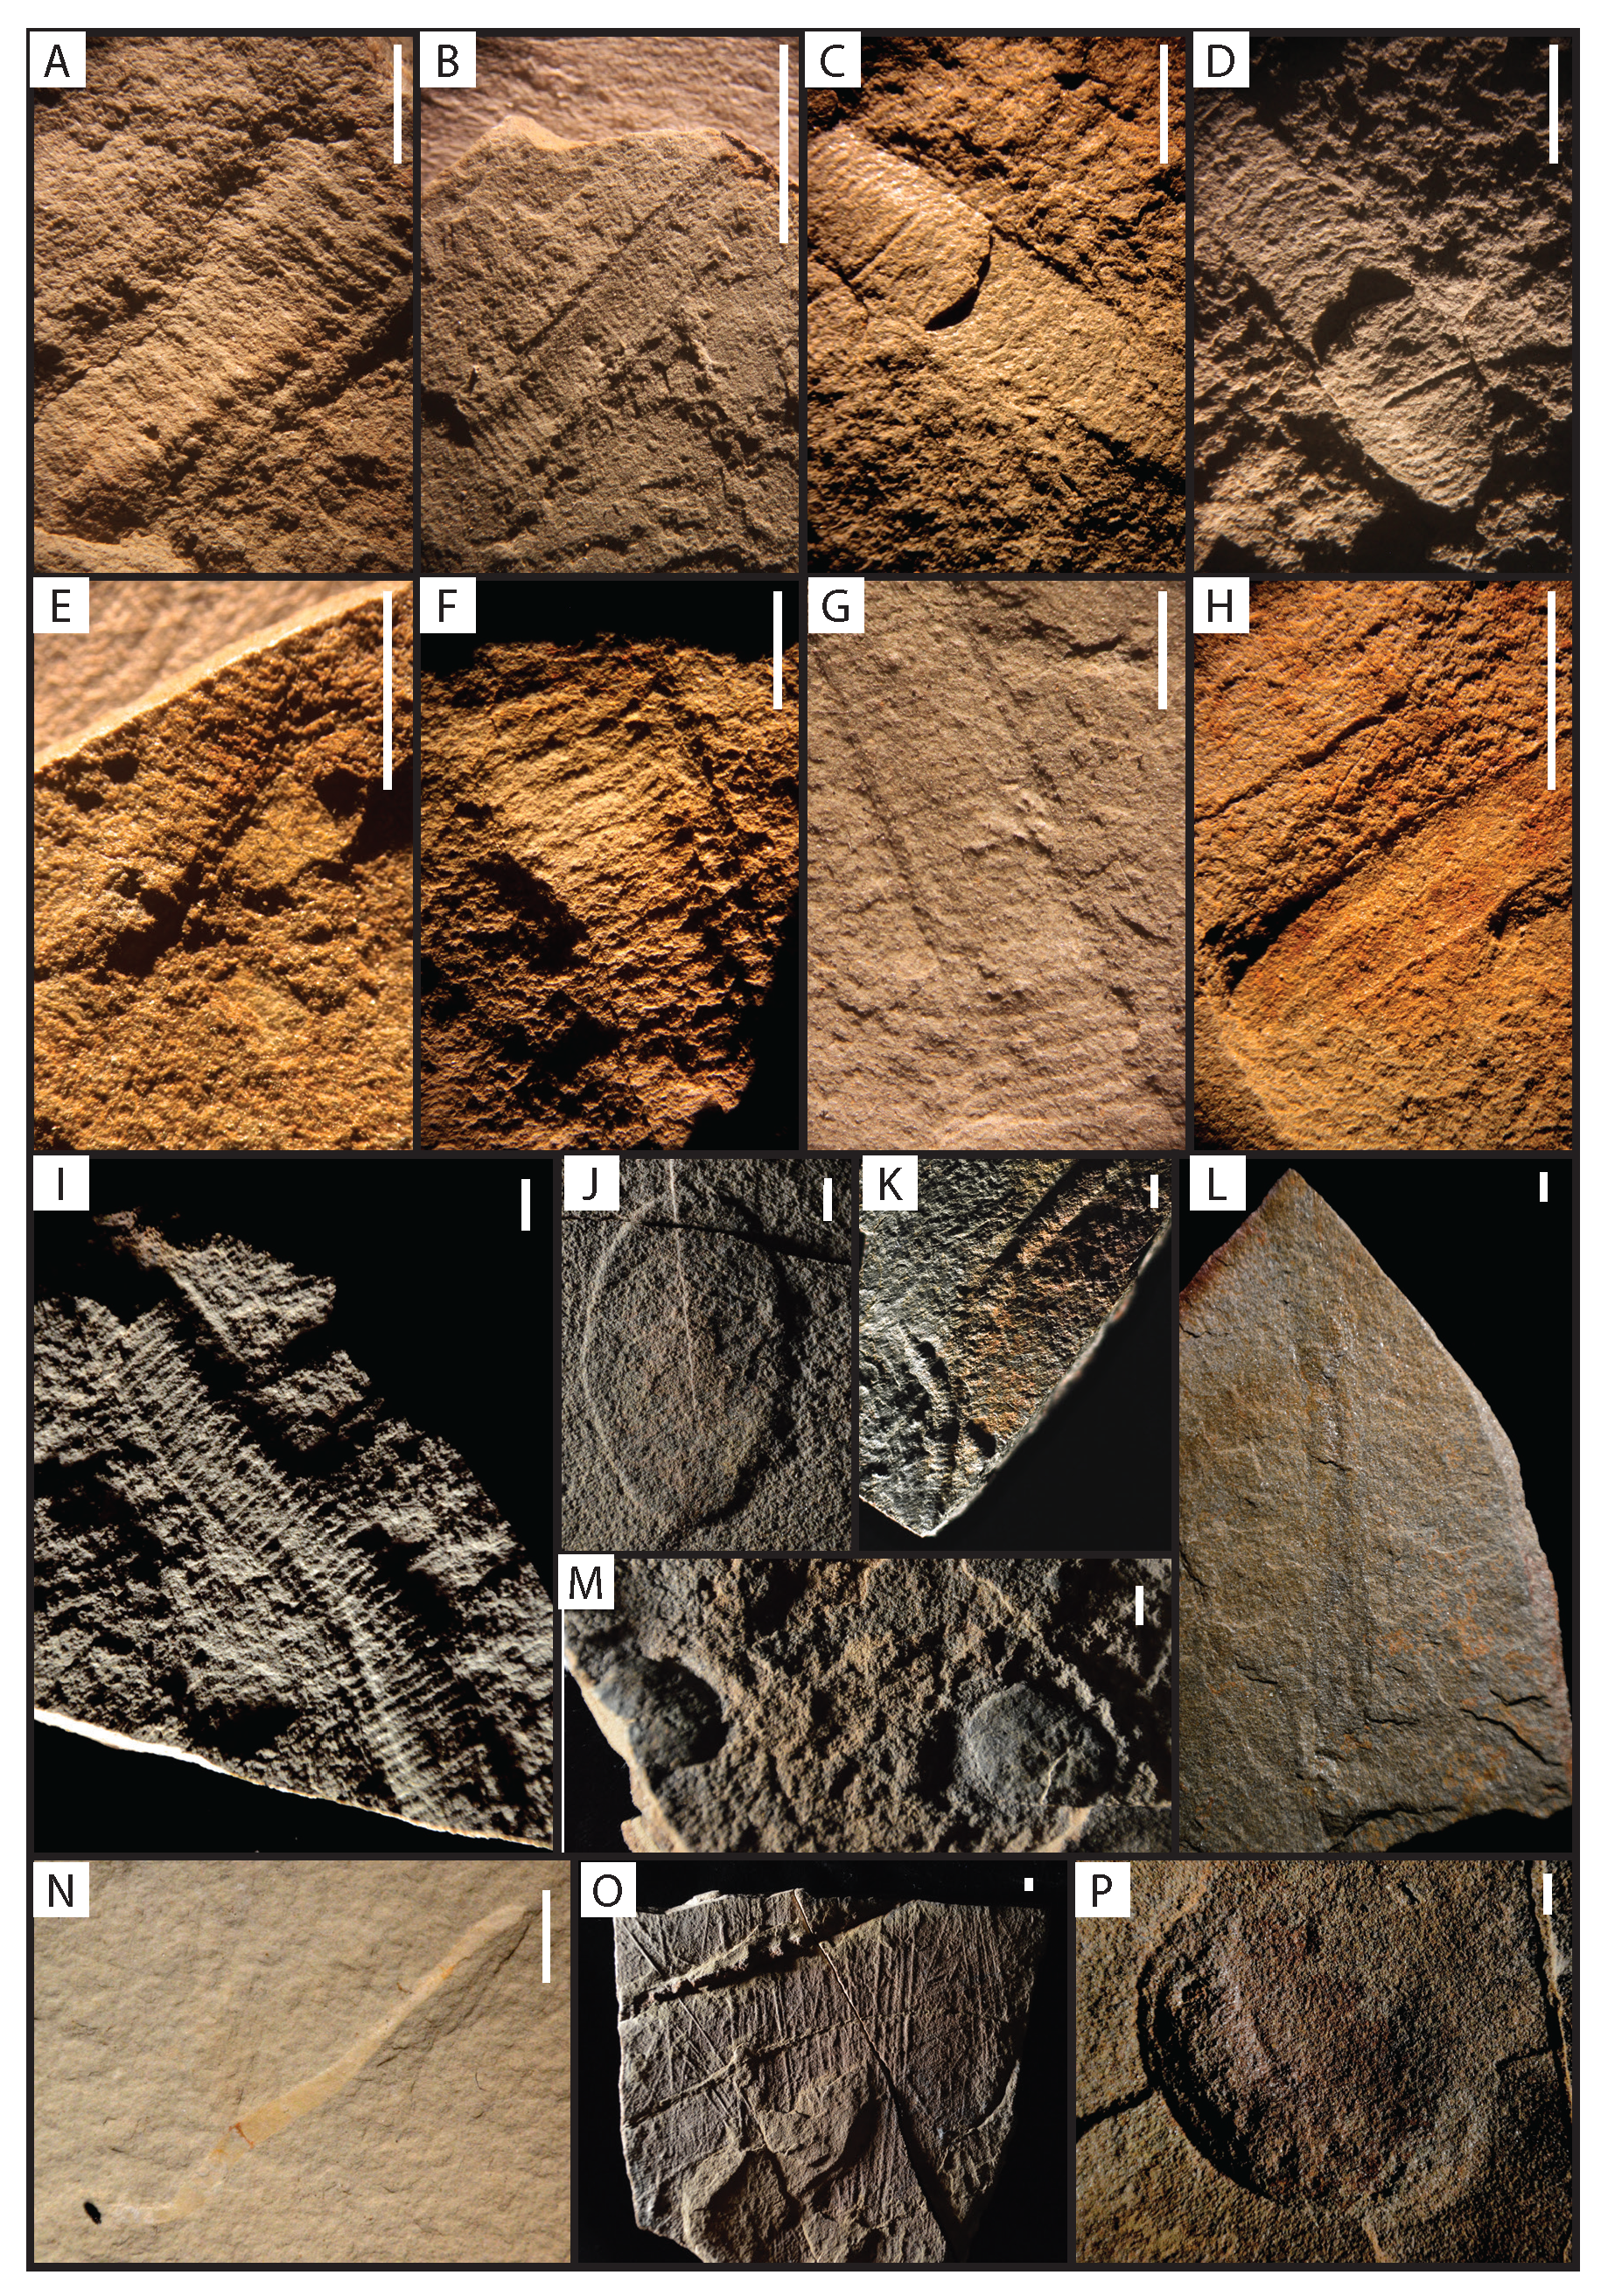 Casts and molds of tubular body fossils from Nevada